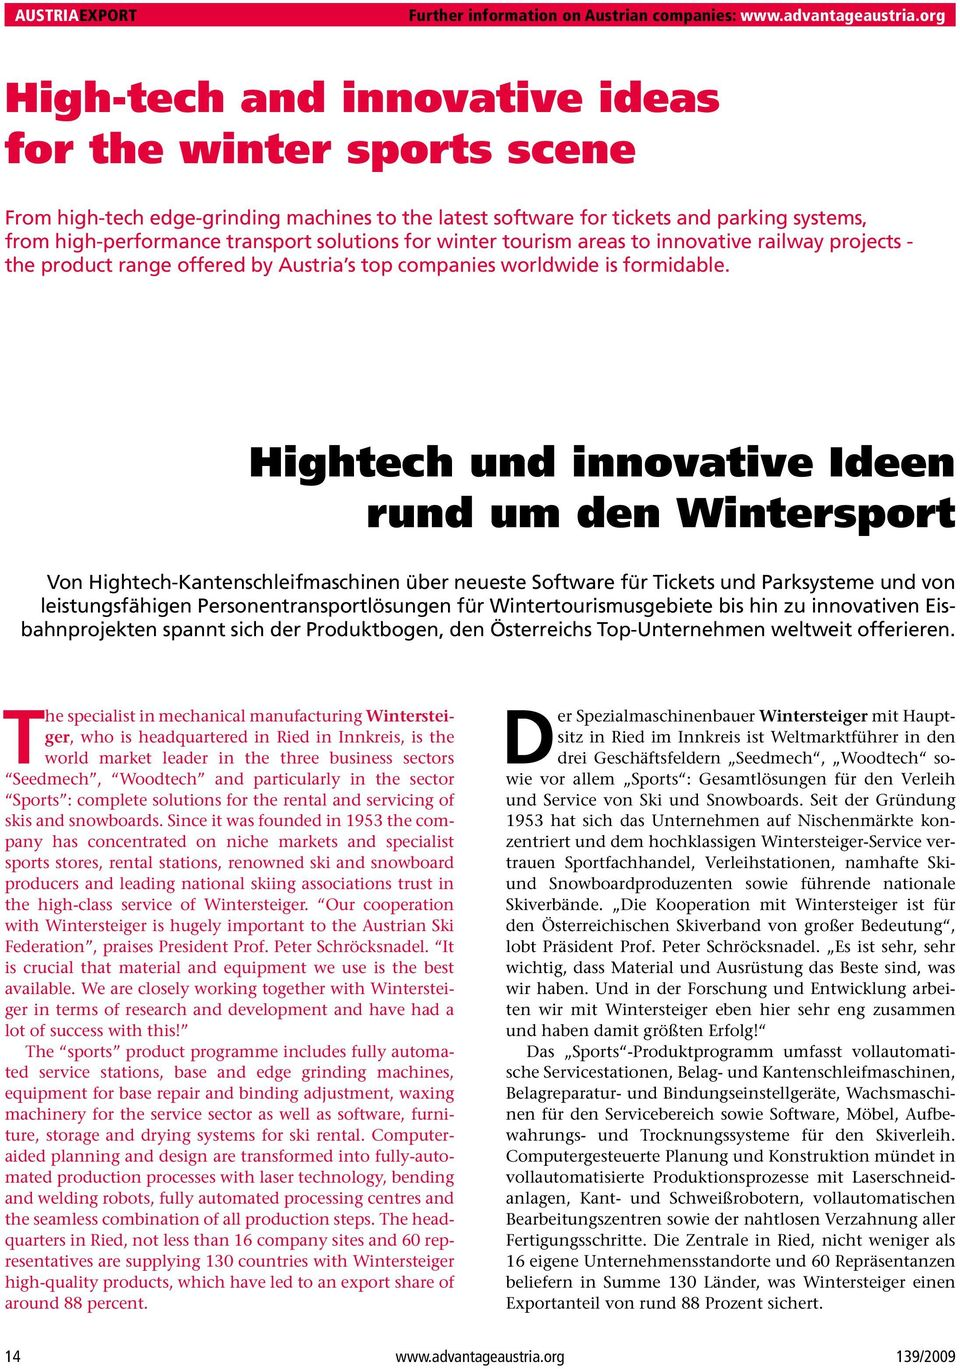 for winter tourism areas to innovative railway projects - the product range offered by Austria s top companies worldwide is formidable.